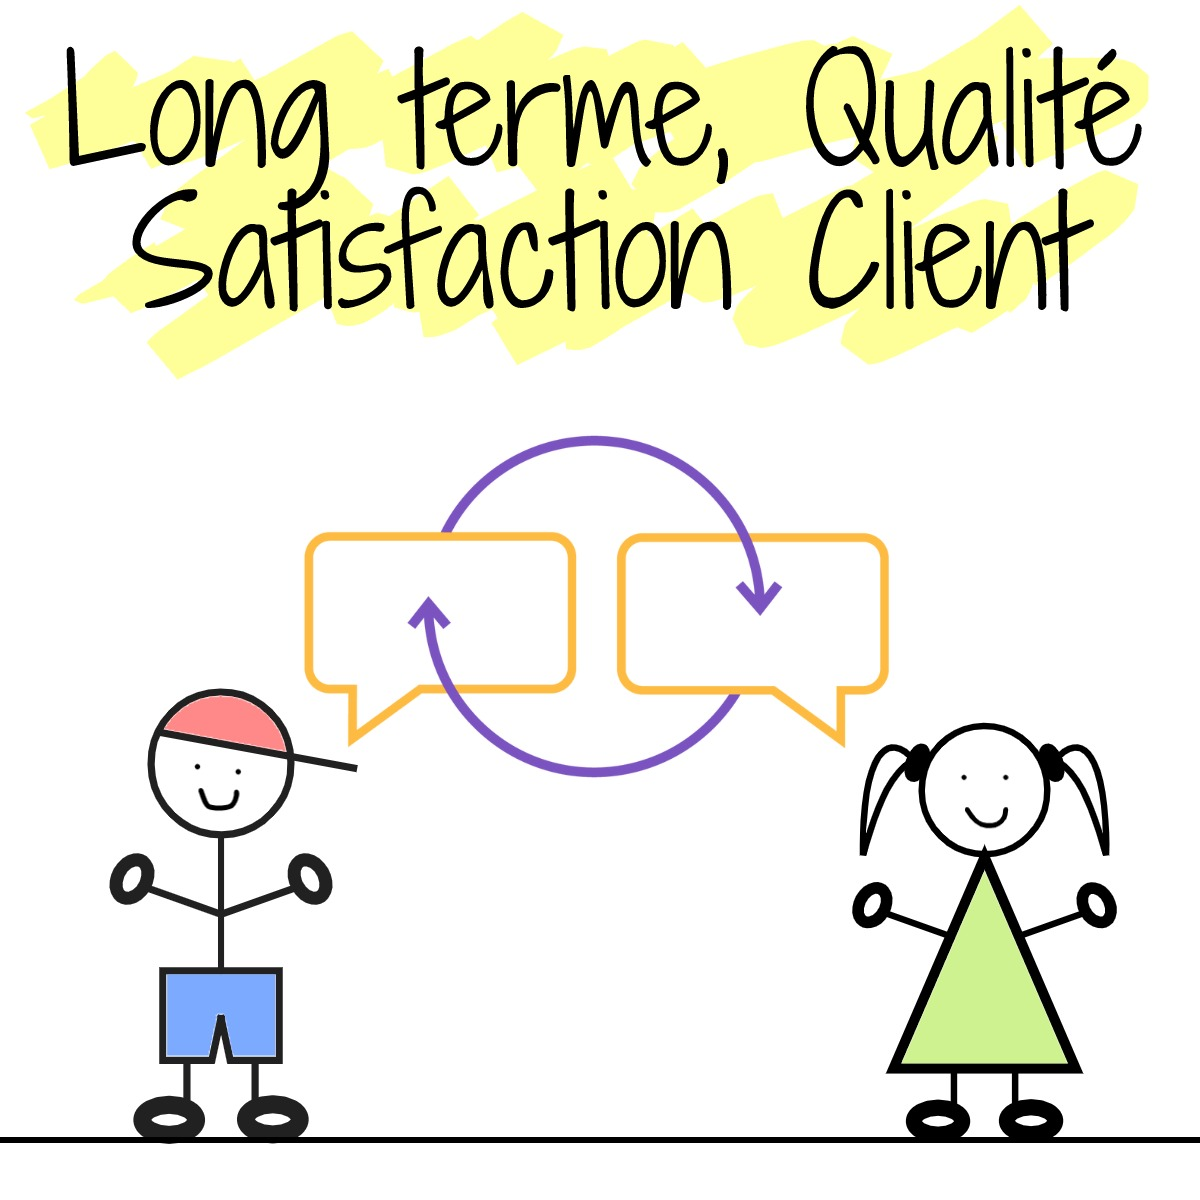 satisfaction client freelance